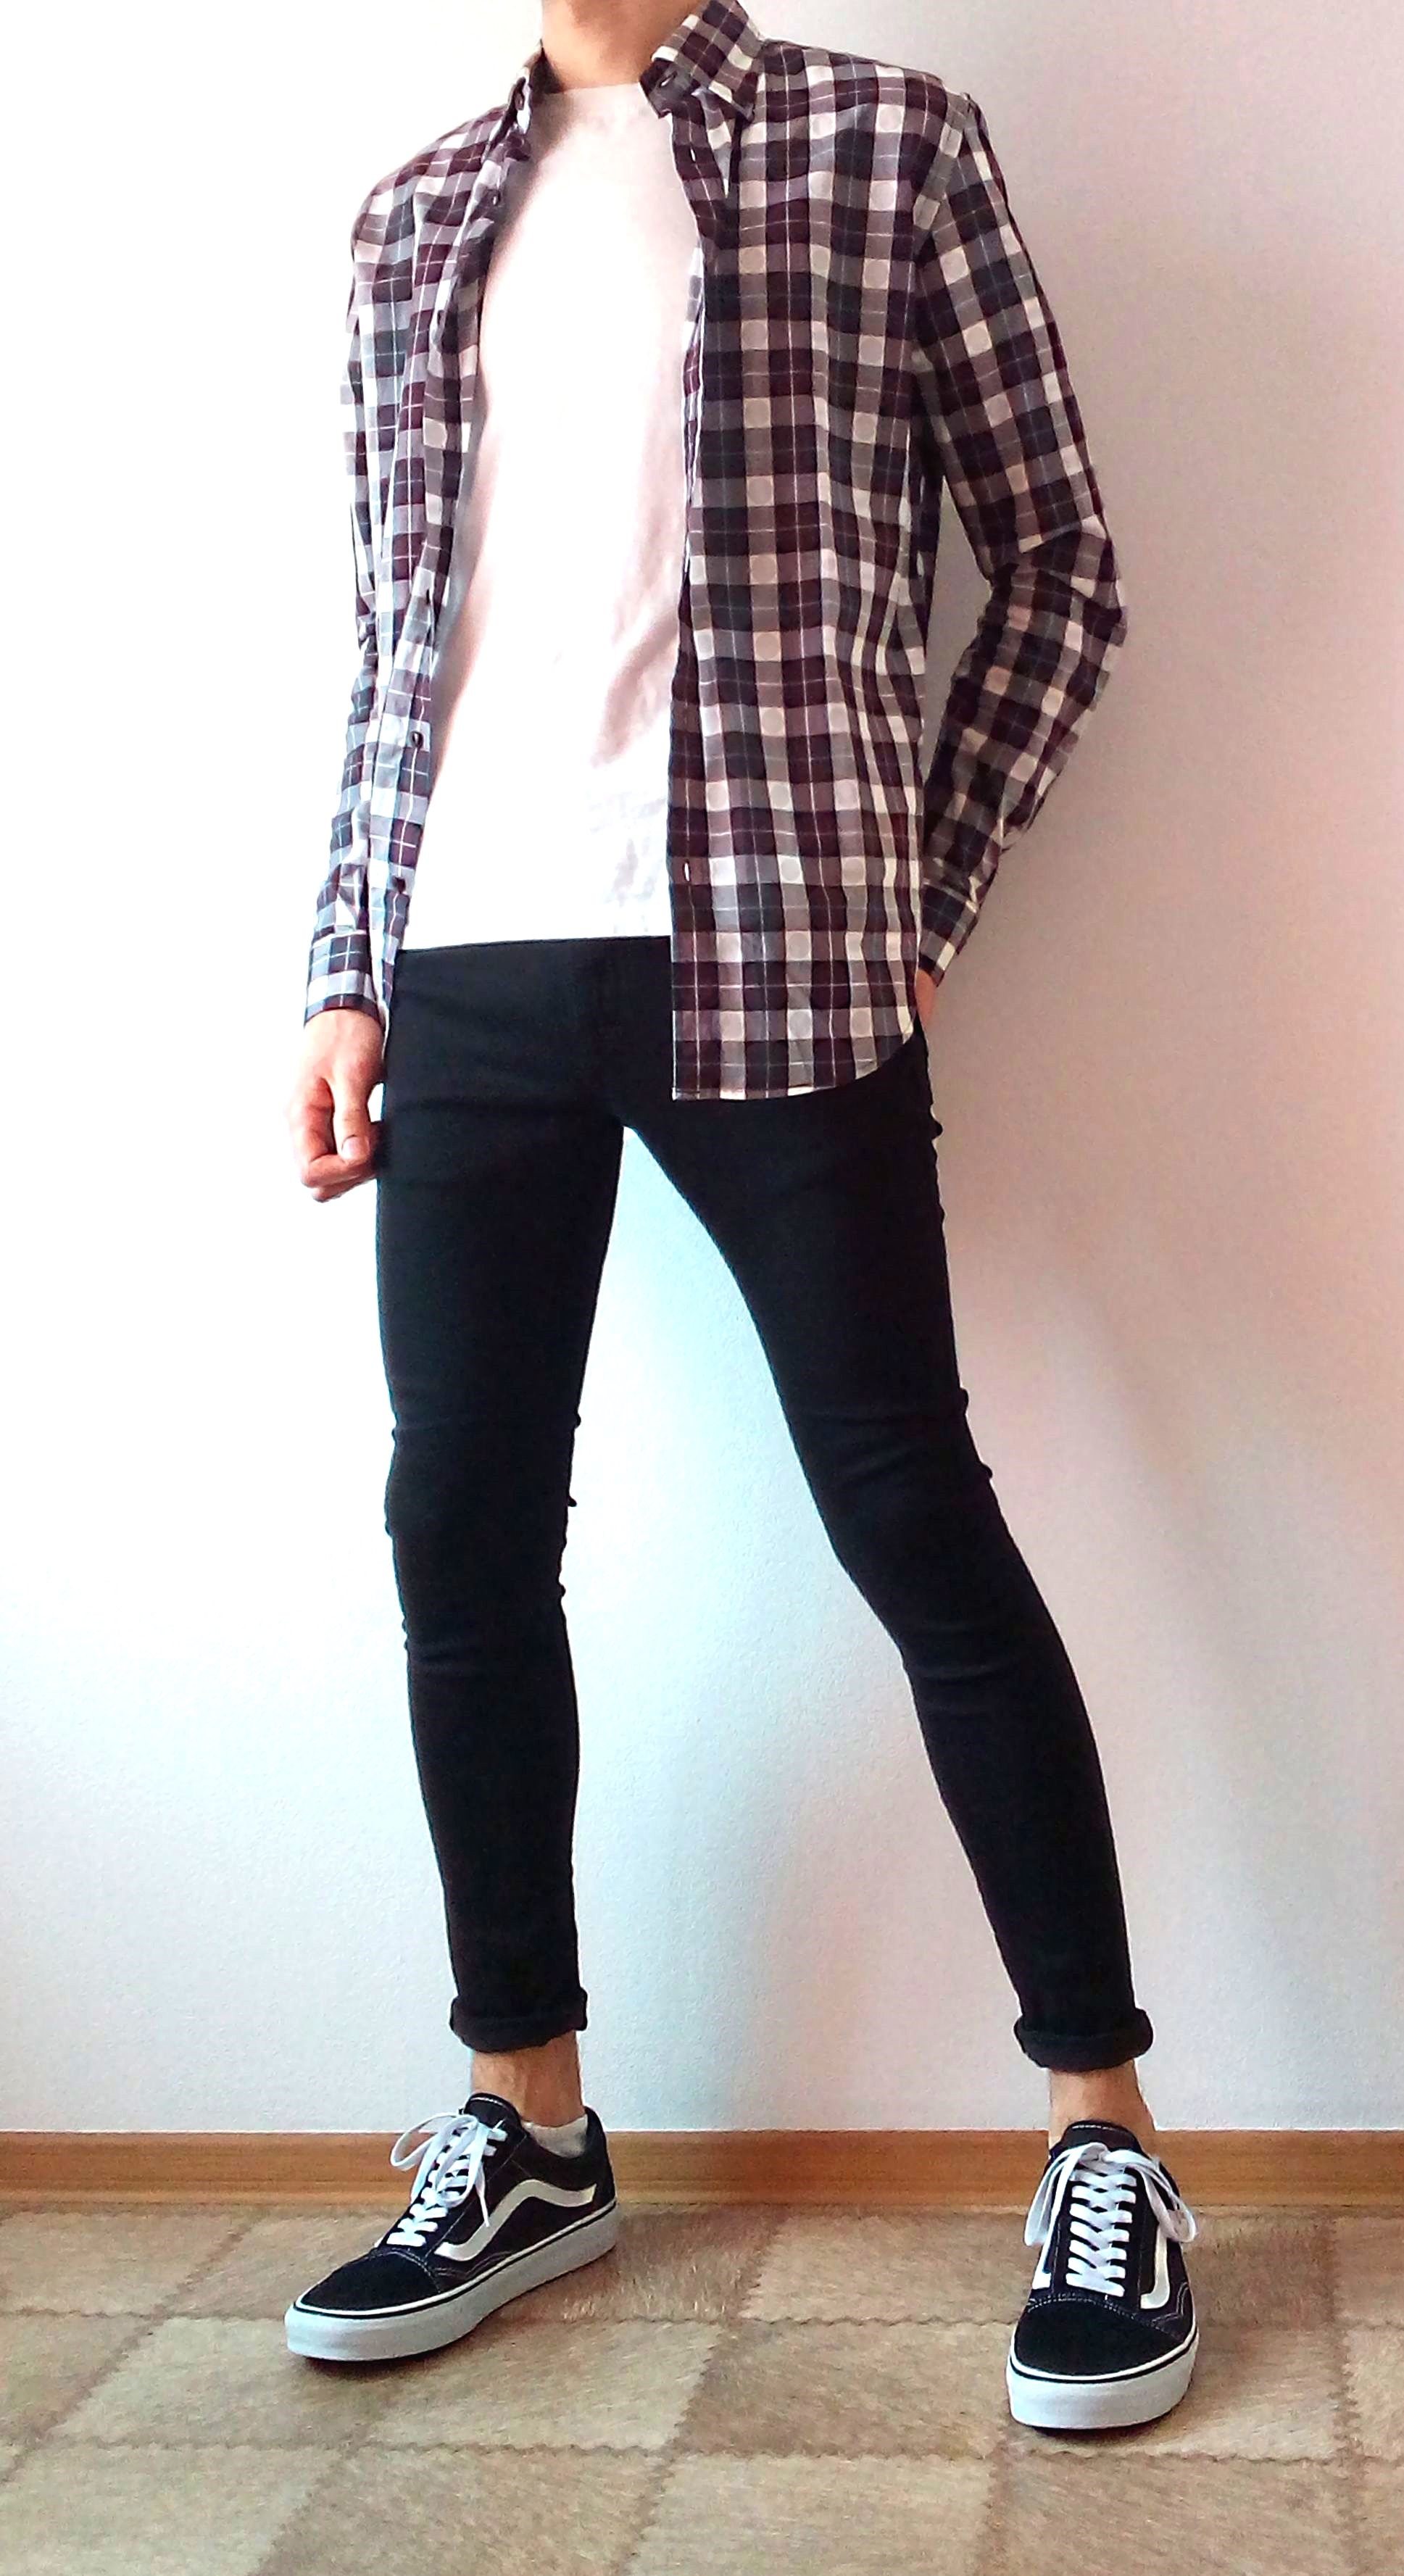 vans old skool black skinny jeans boys guys outfit | vans